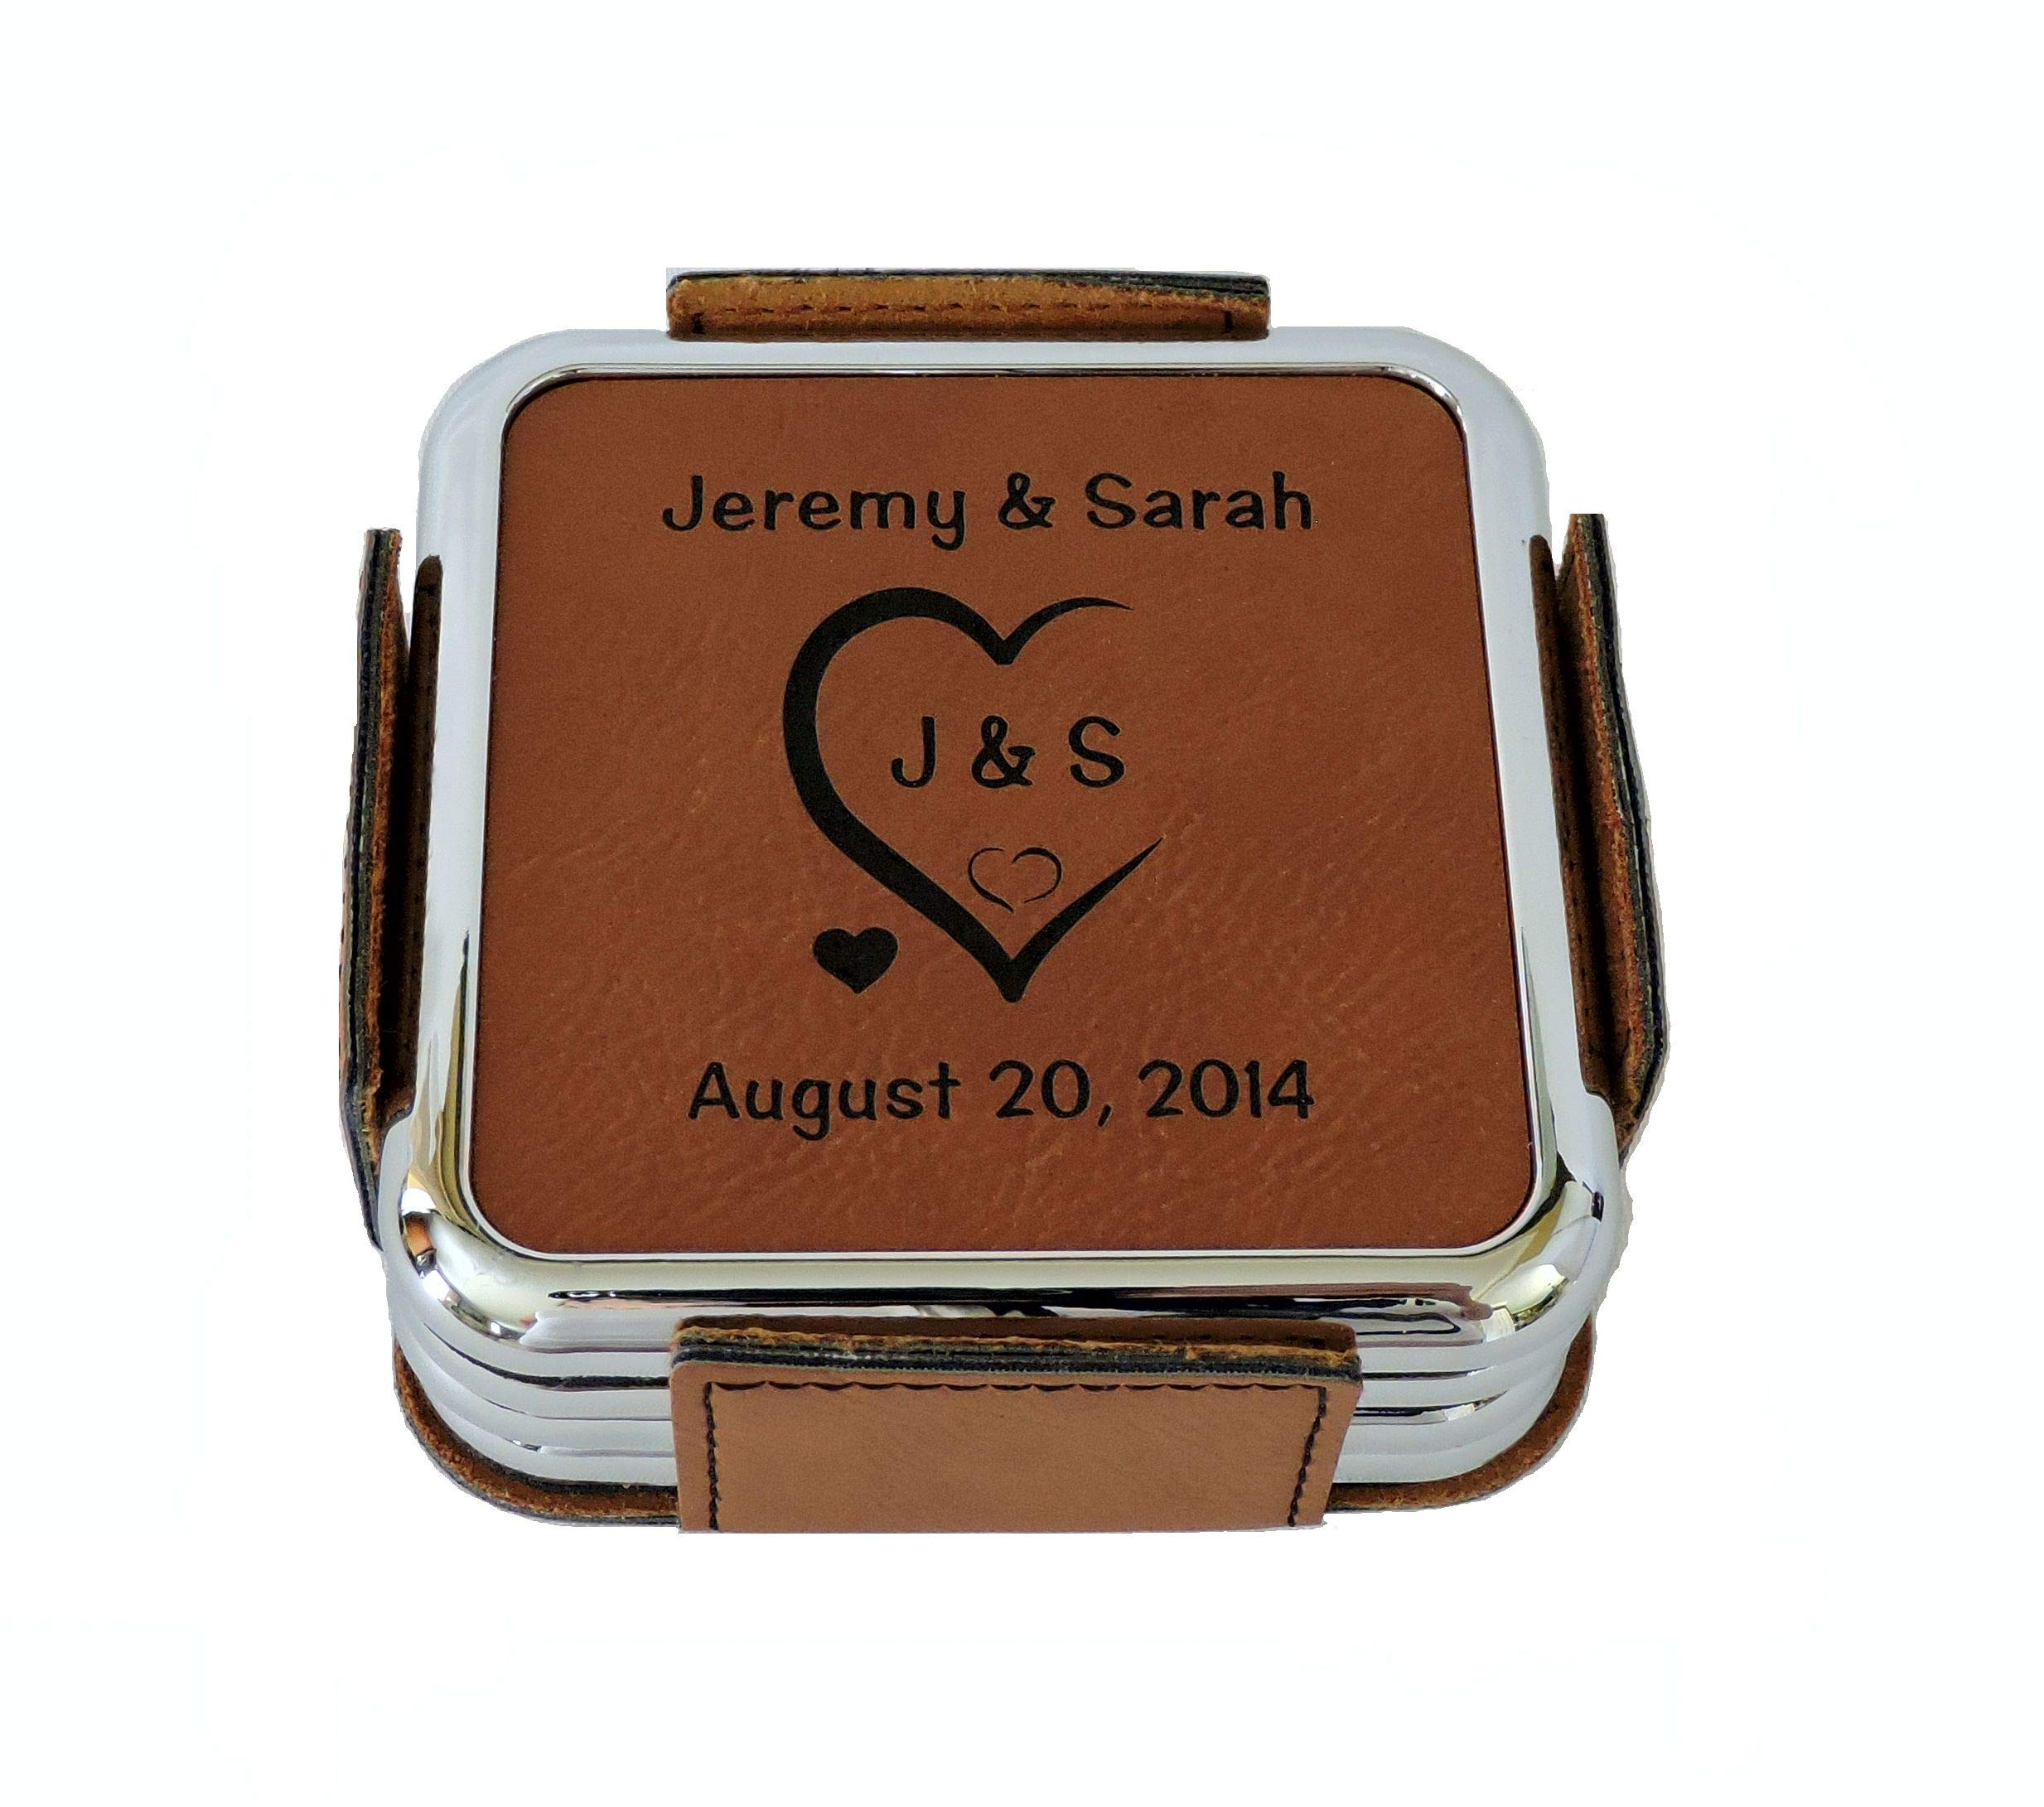 Leather Coasters Personalized with Initials Carved in Heart and Wedding Date by Forever Me Gifts